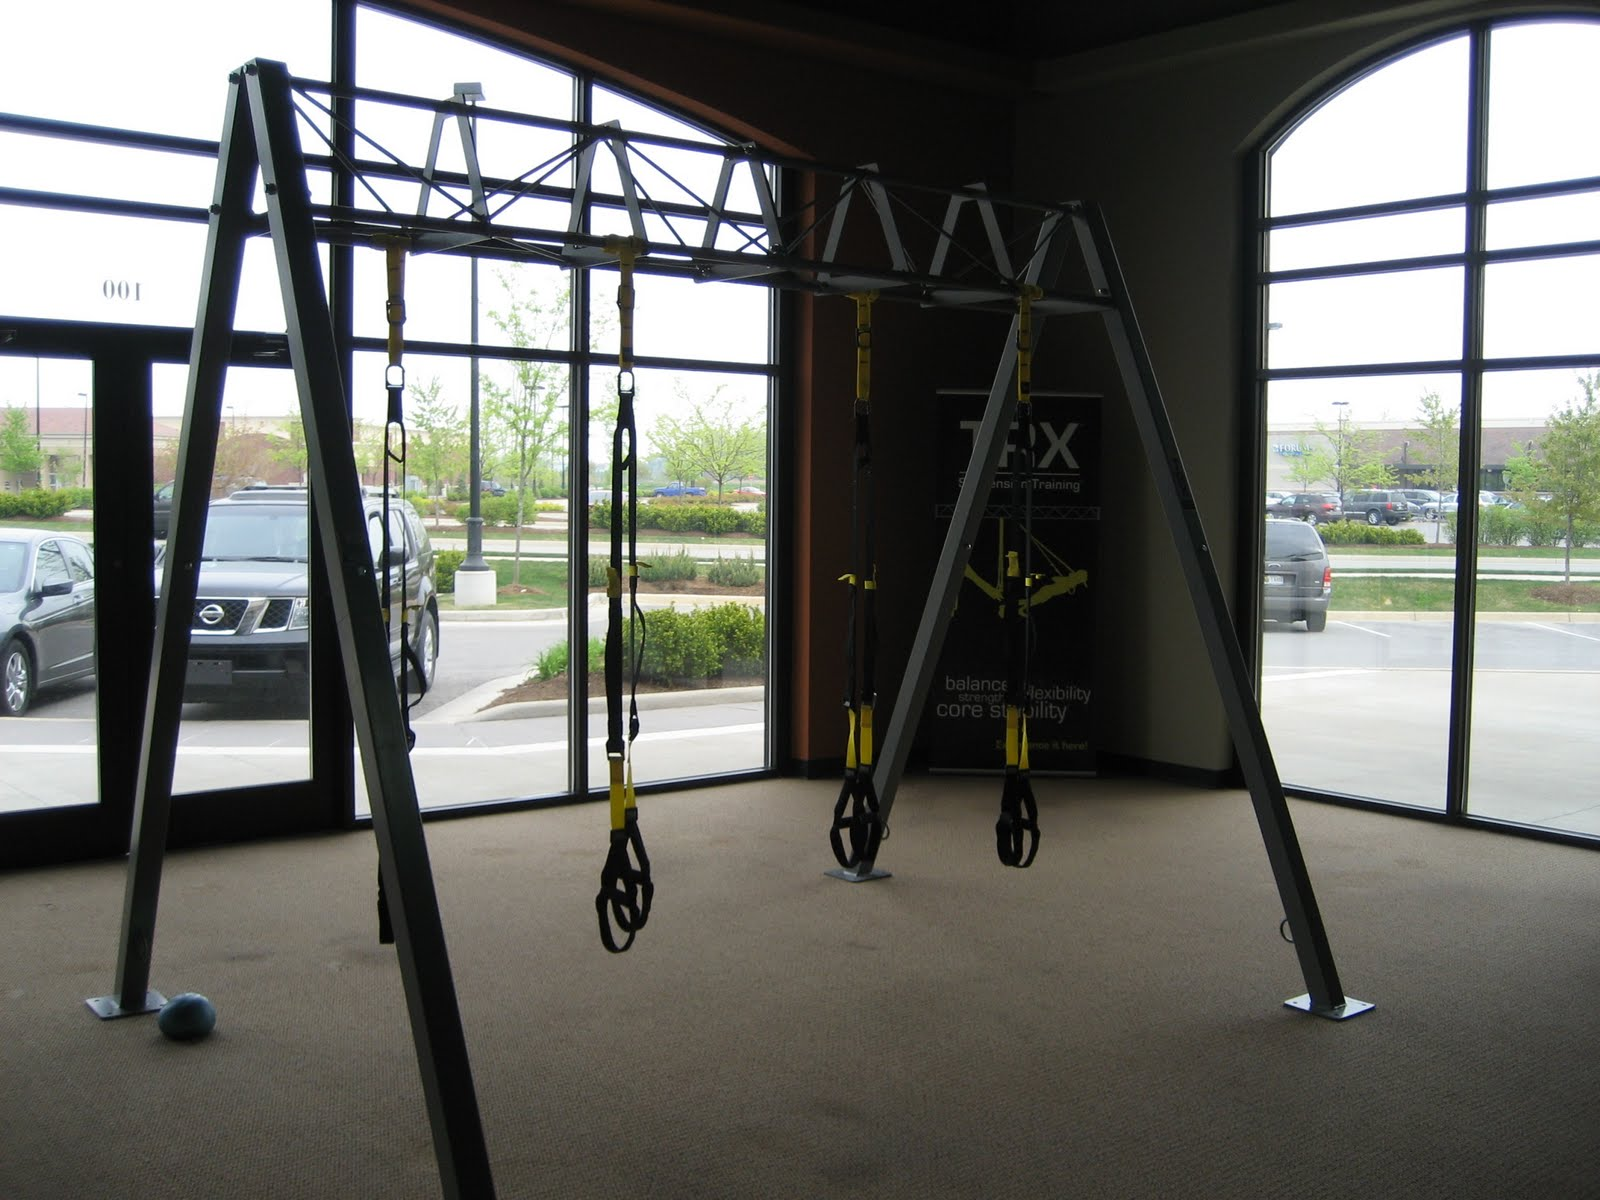 Anytime Fitness of Noblesville, IN: Behold...The 10 ft S-Frame